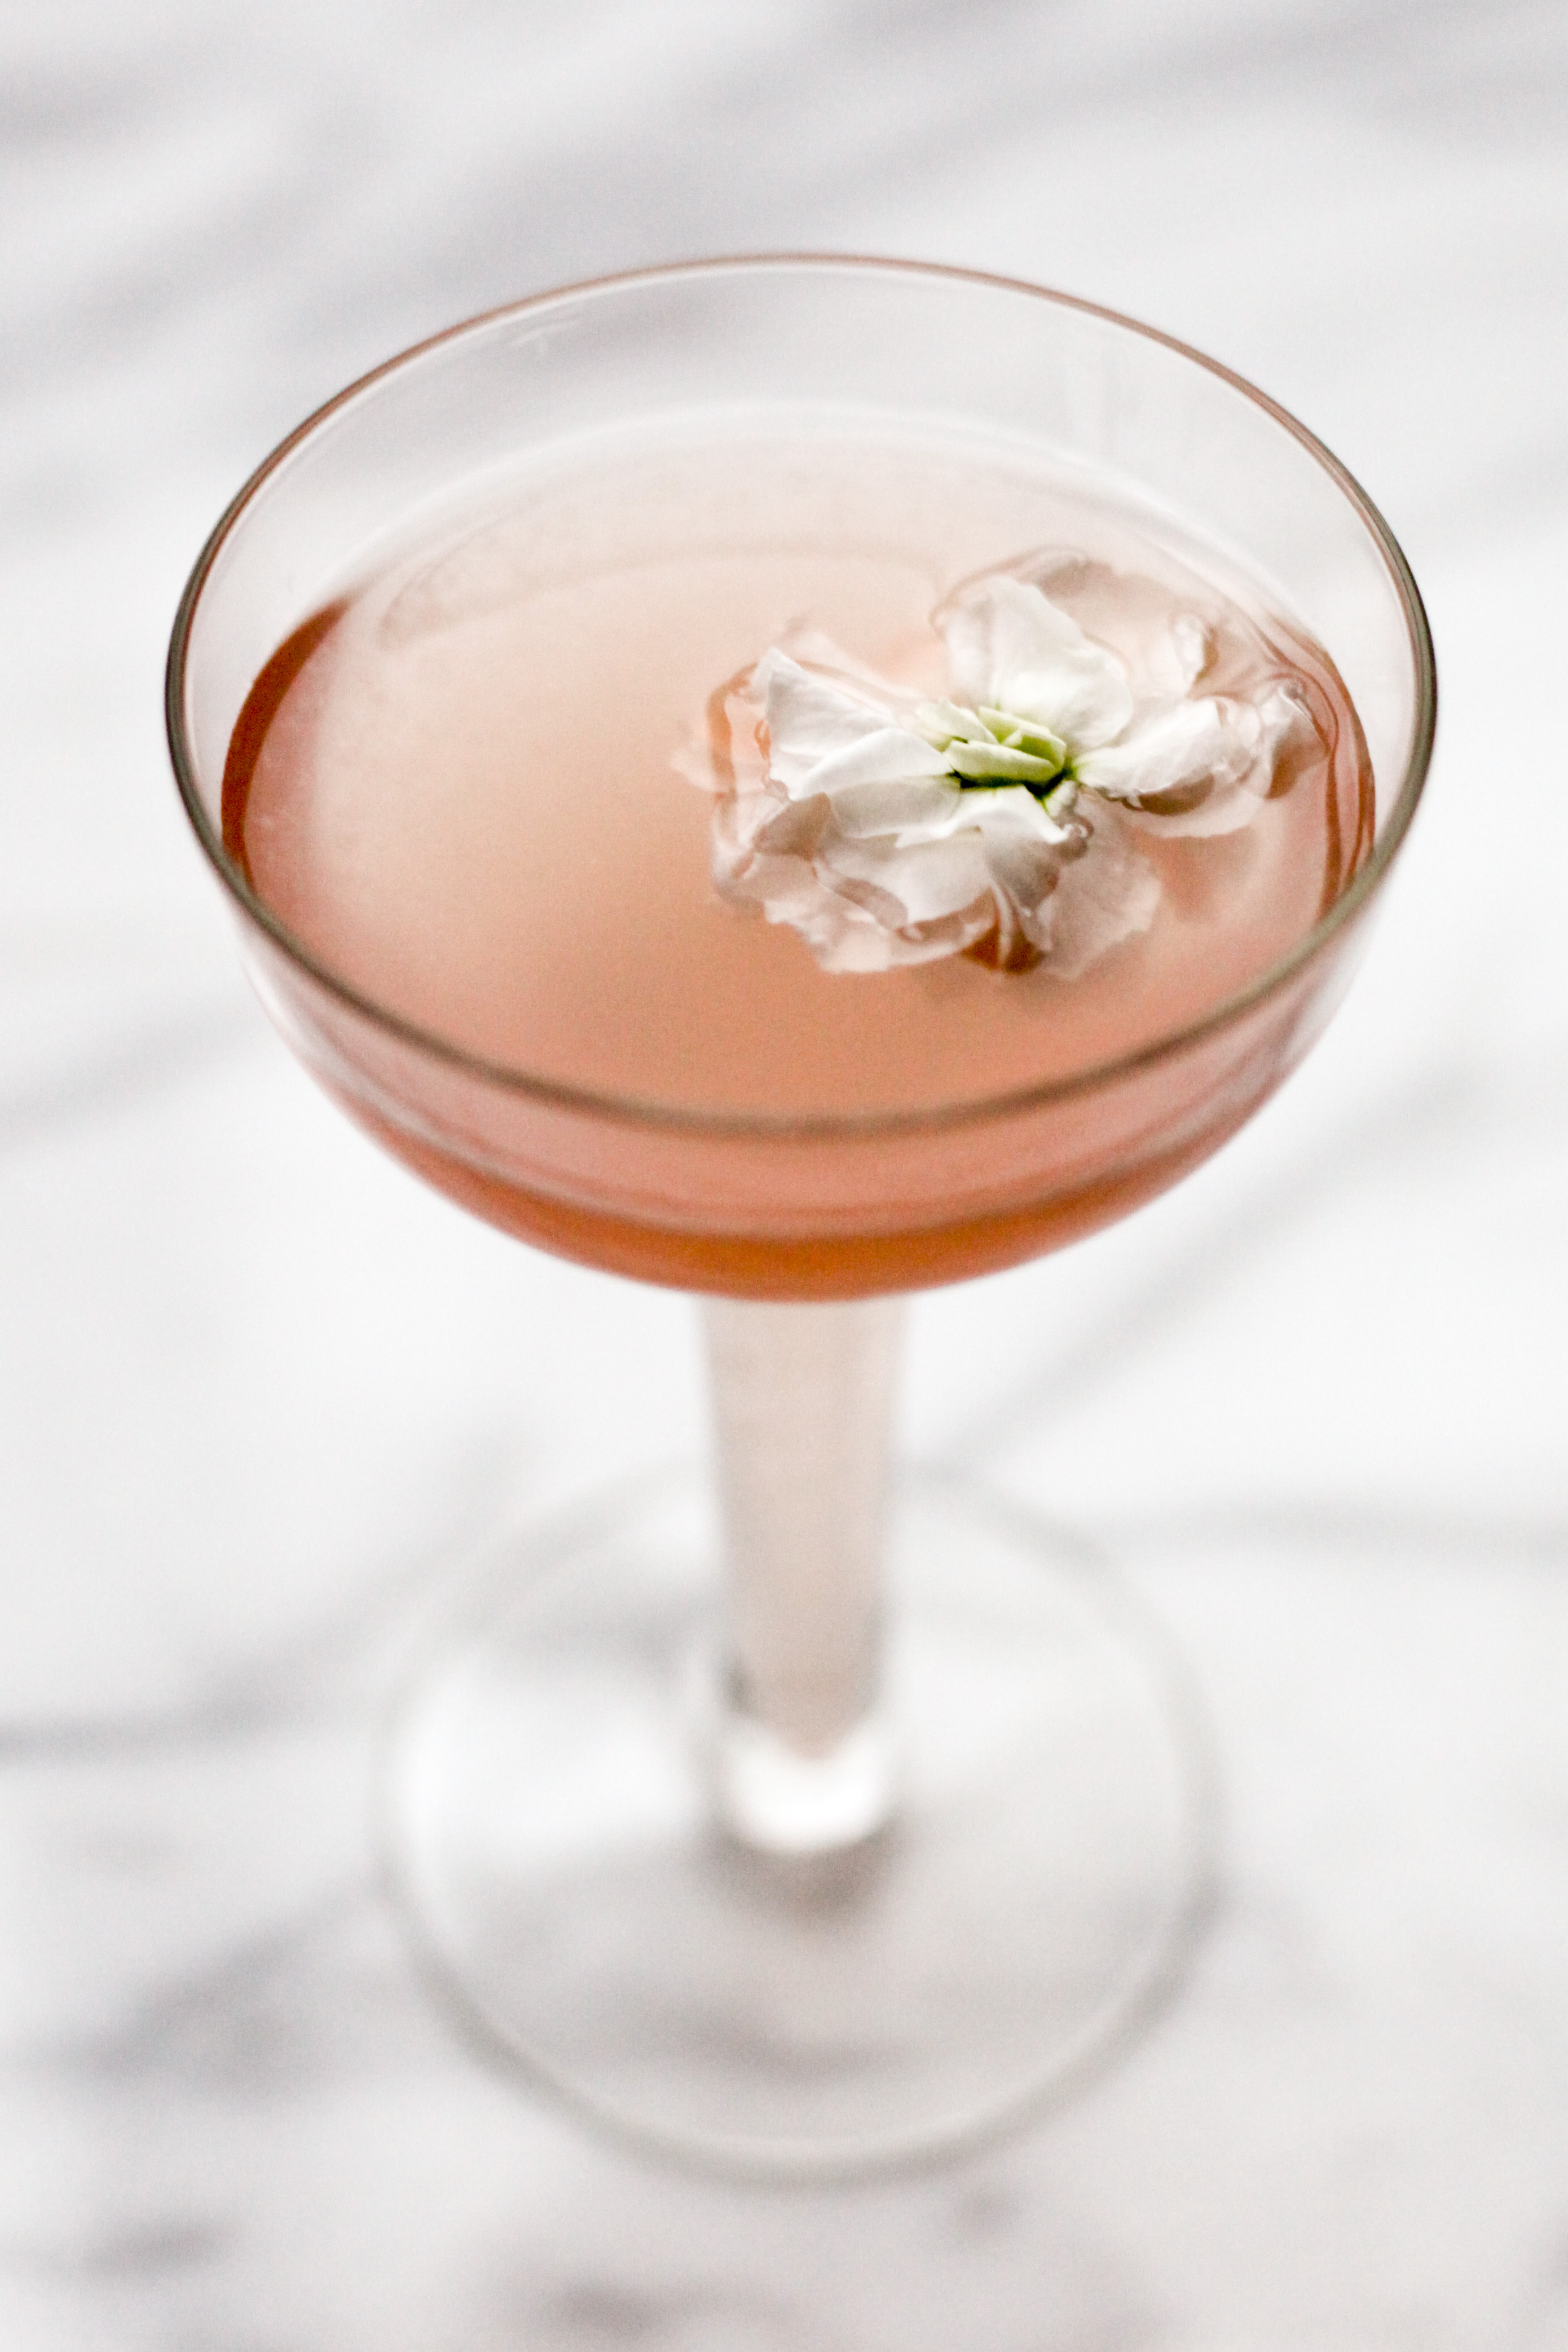 Lillet, Elderflower, and Grapefruit Gin Cocktail | amodestfeast.com | @amodestfeast